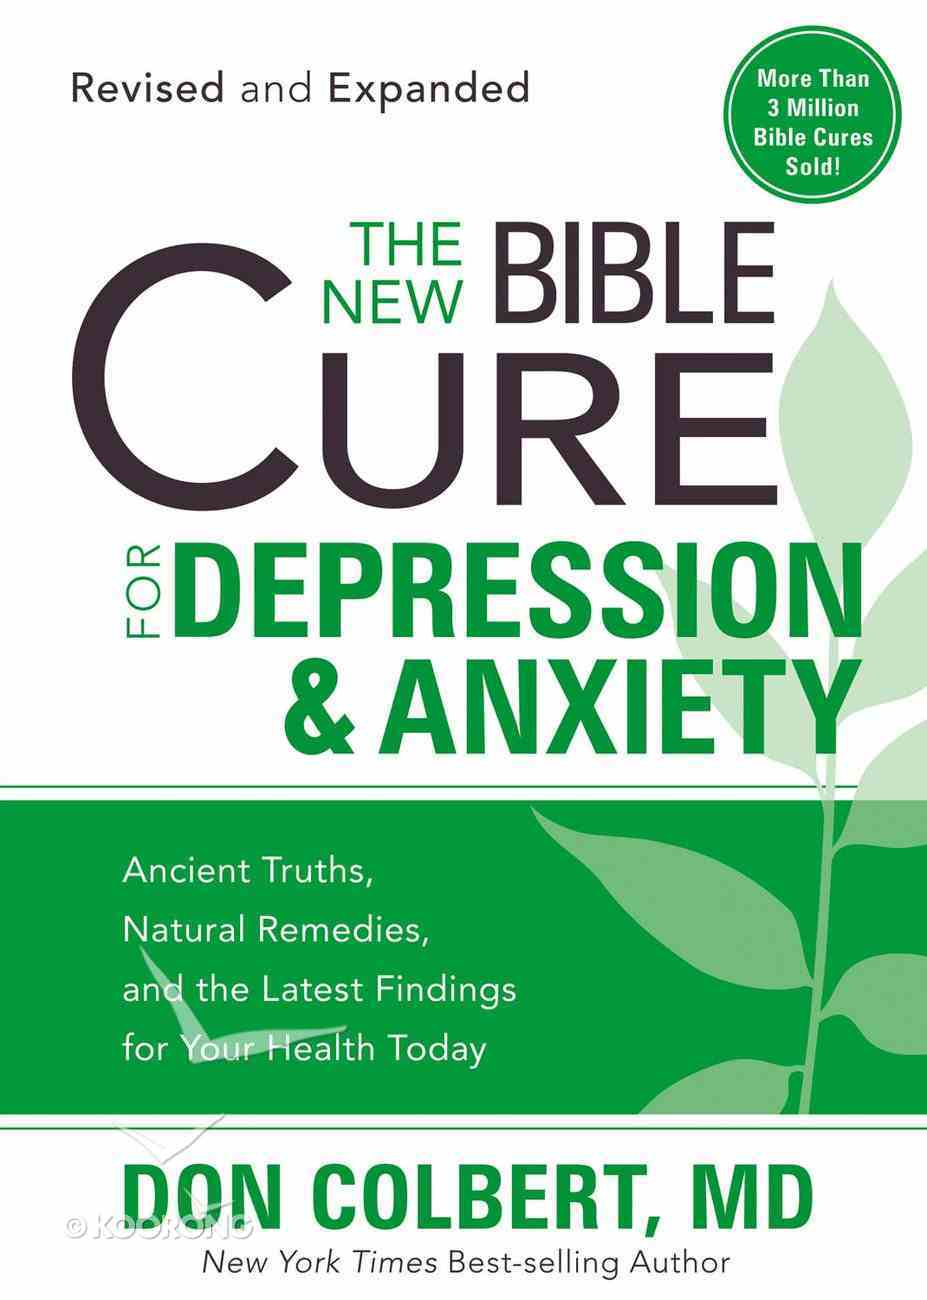 The New Bible Cure For Depression & Anxiety (The New Bible Cure Series) eBook